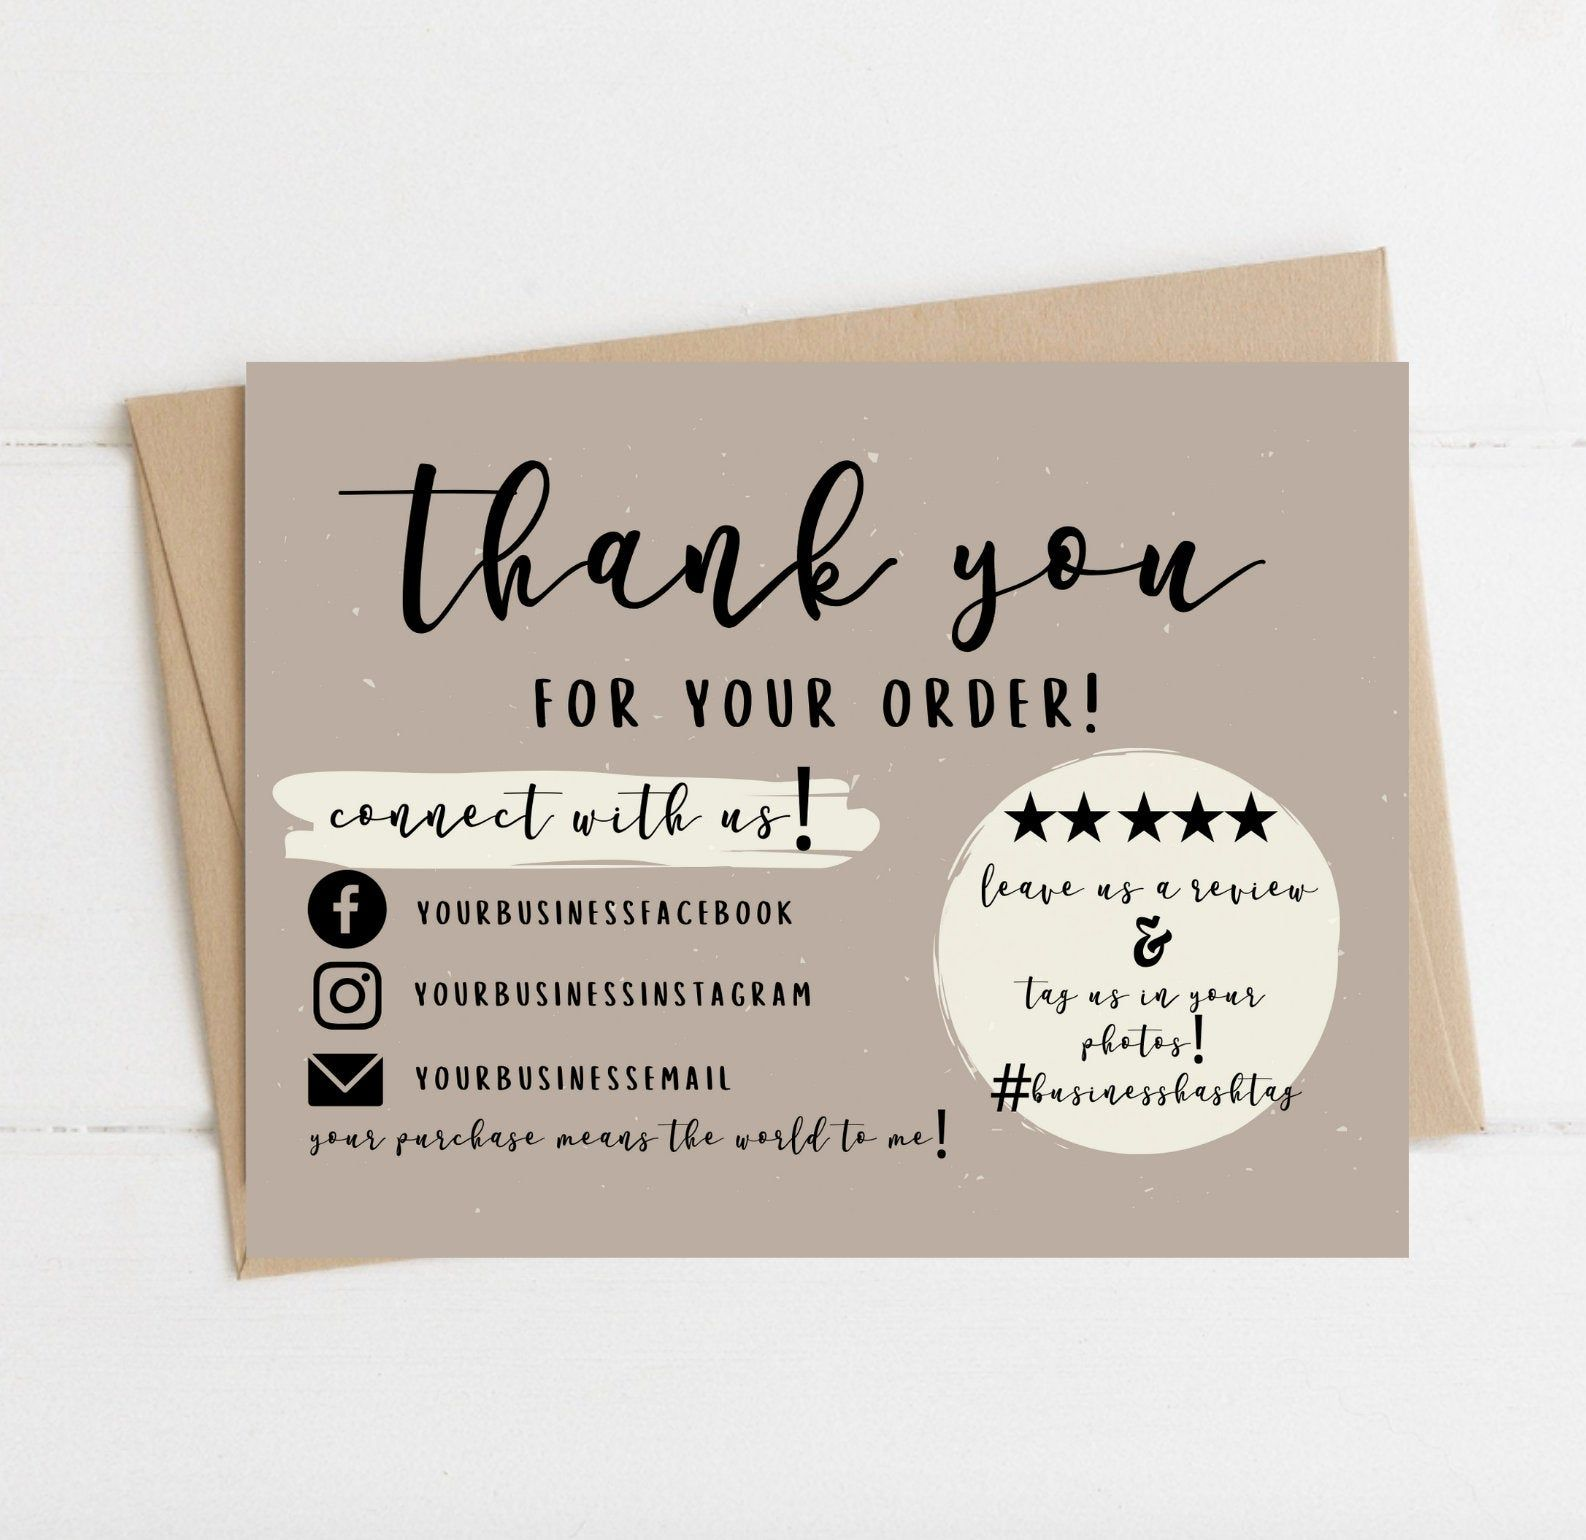 Instant Download Thank You Card Editable And Printable Thank You Cards Thank You Card For Business Simple Thank You Business Cards Kartu Nama Bisnis Kartu Nama Desain Logo Bisnis